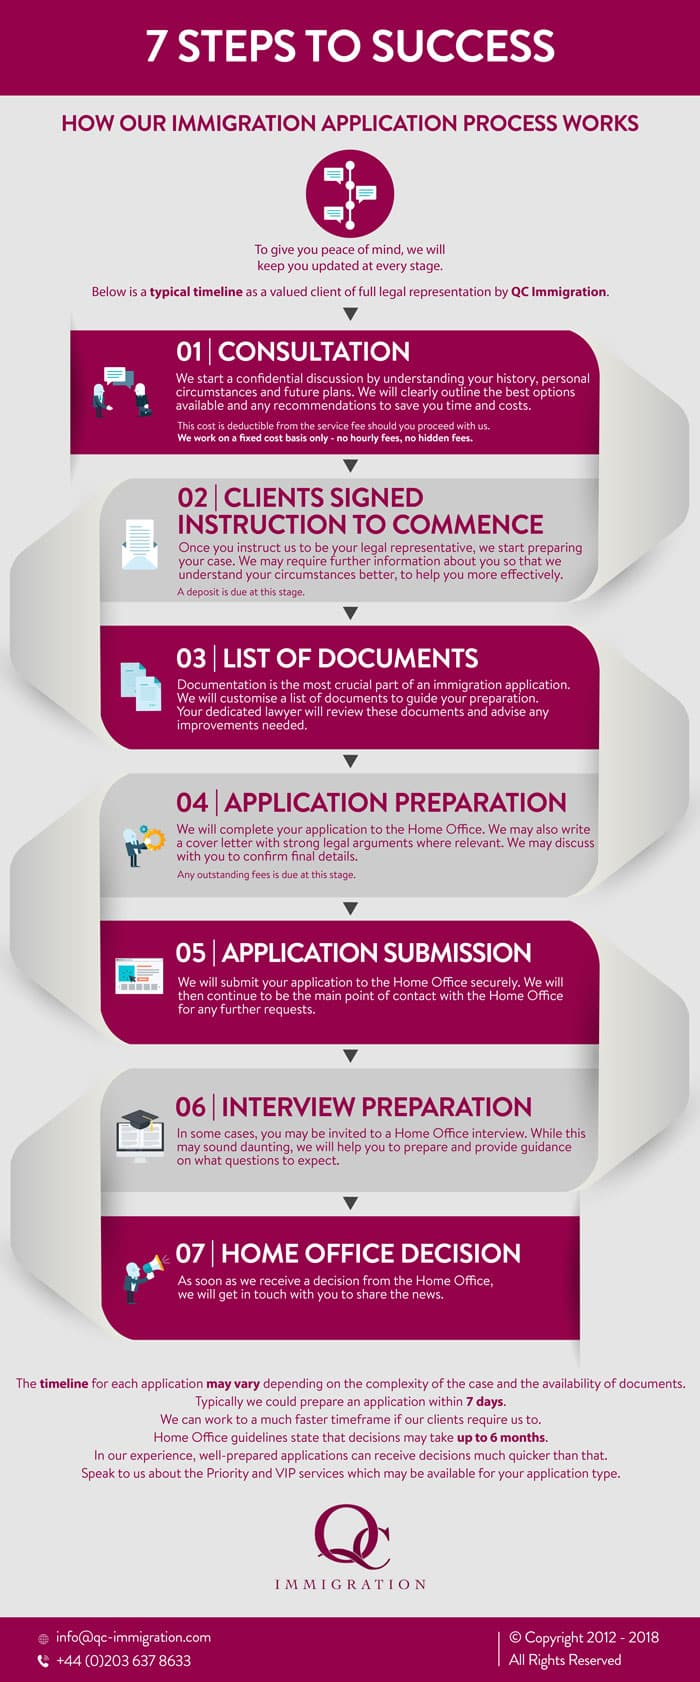 7 steps to success - timeline showing how the immigration application process works